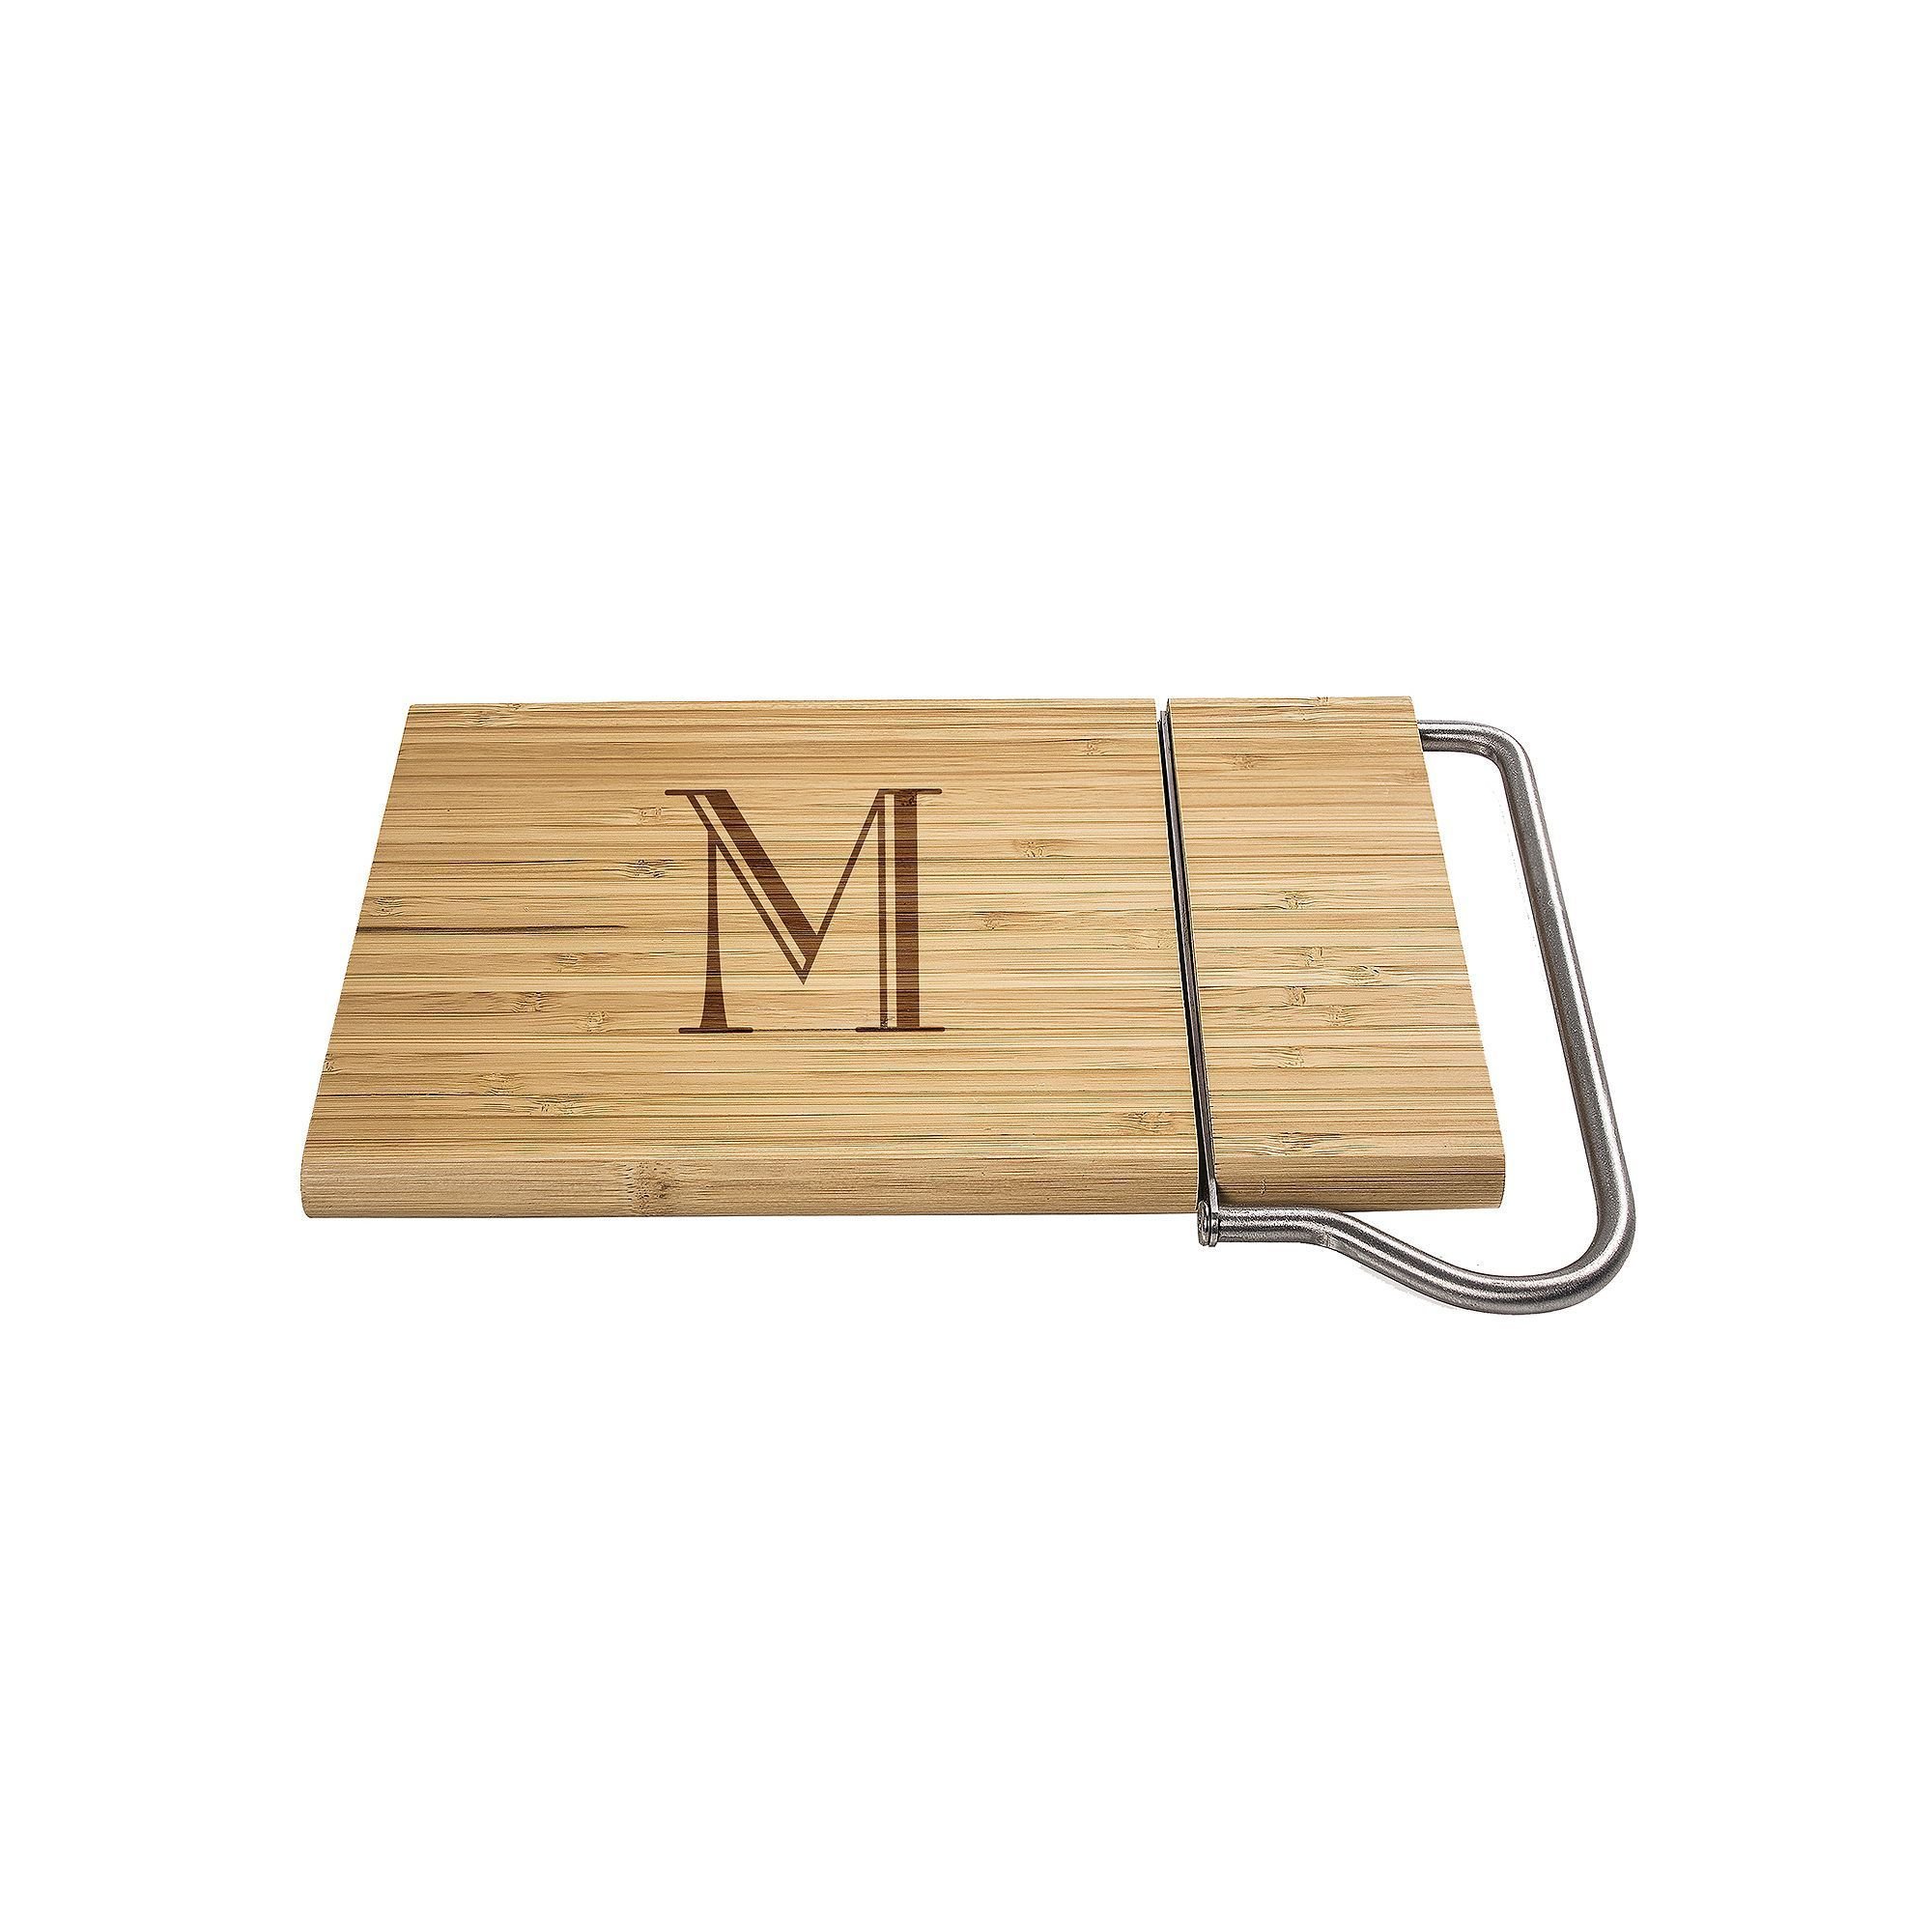 Cathy's Concepts Monogram Bamboo Cheese Slicer, Brown